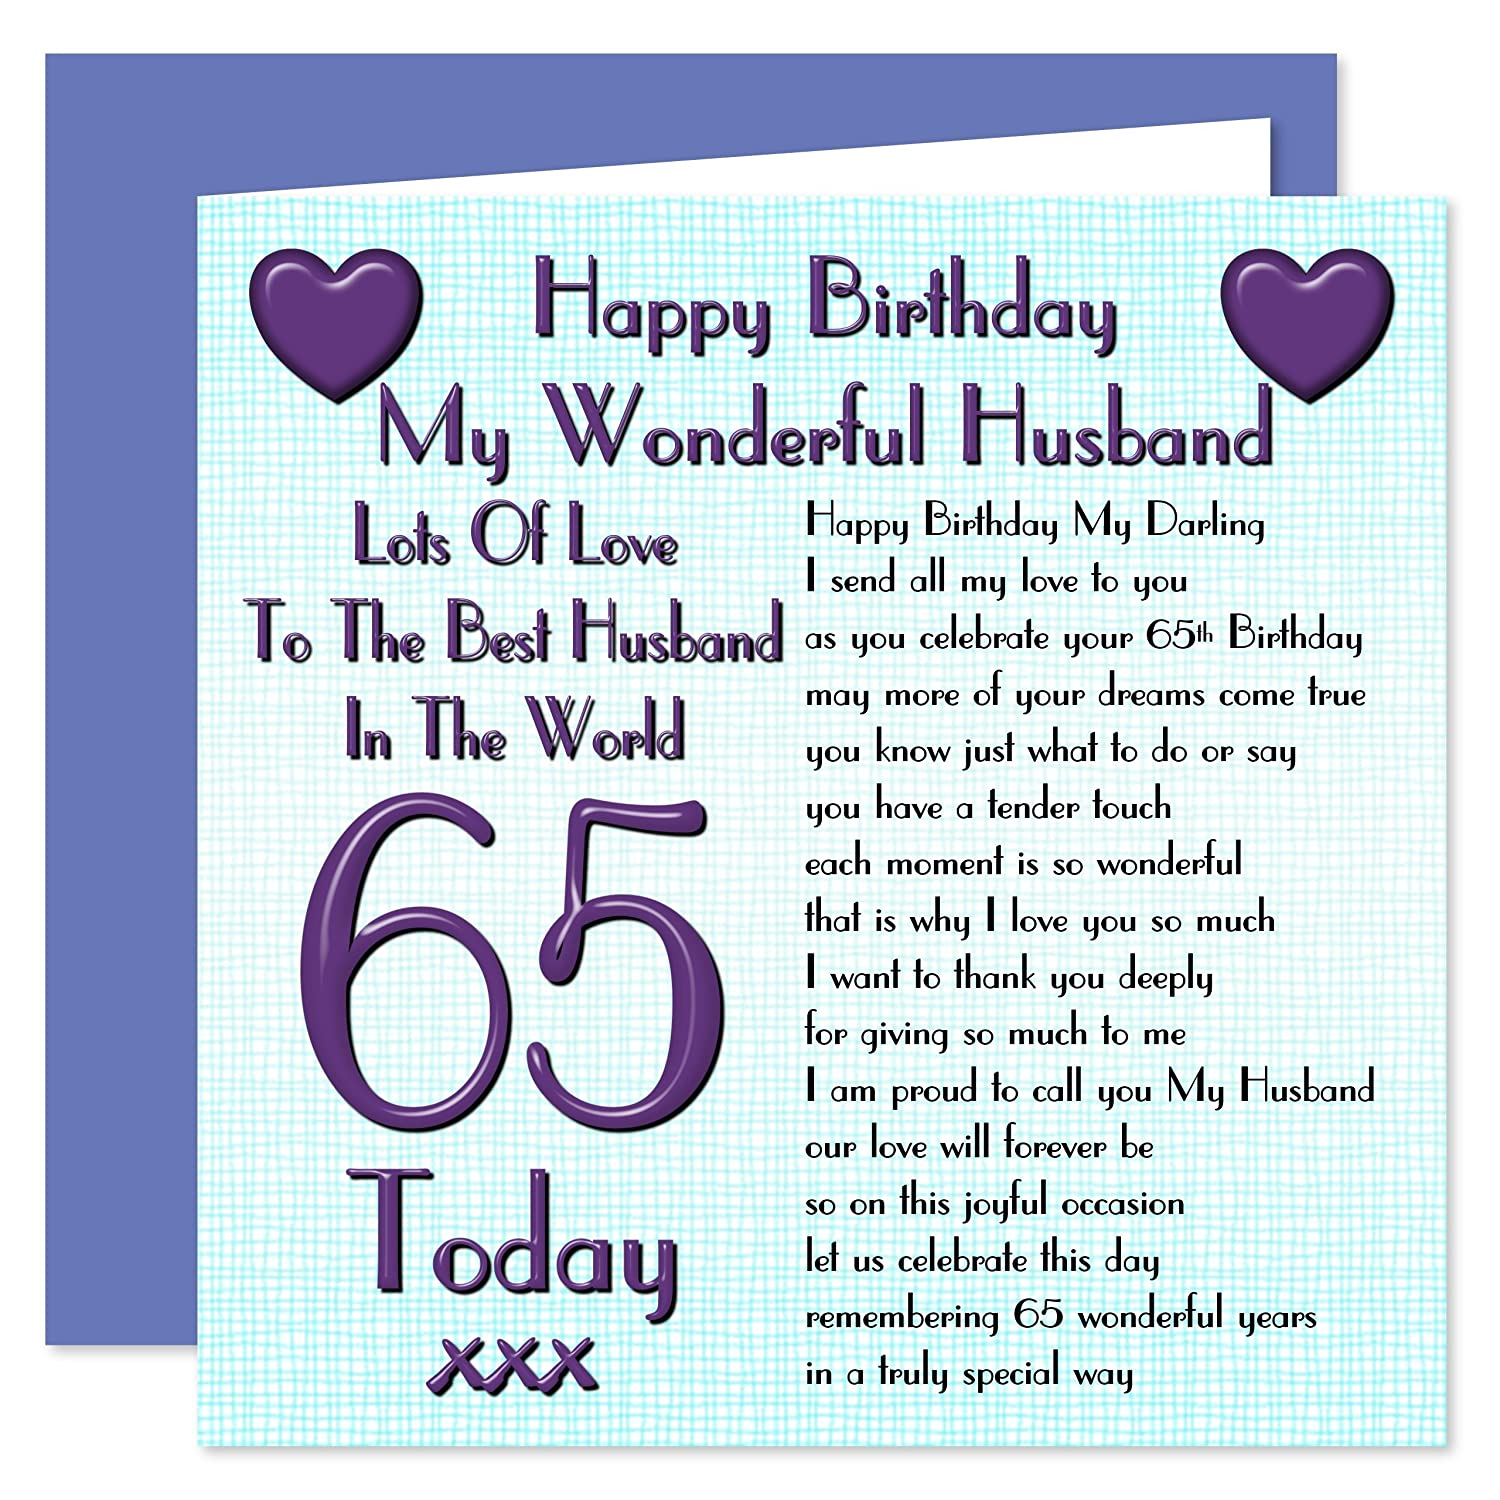 Image of: Poem Husband 65th Happy Birthday Card Lots Of Love To The Best Husband In The World 65 Today Amazoncouk Office Products Amazon Uk Husband 65th Happy Birthday Card Lots Of Love To The Best Husband